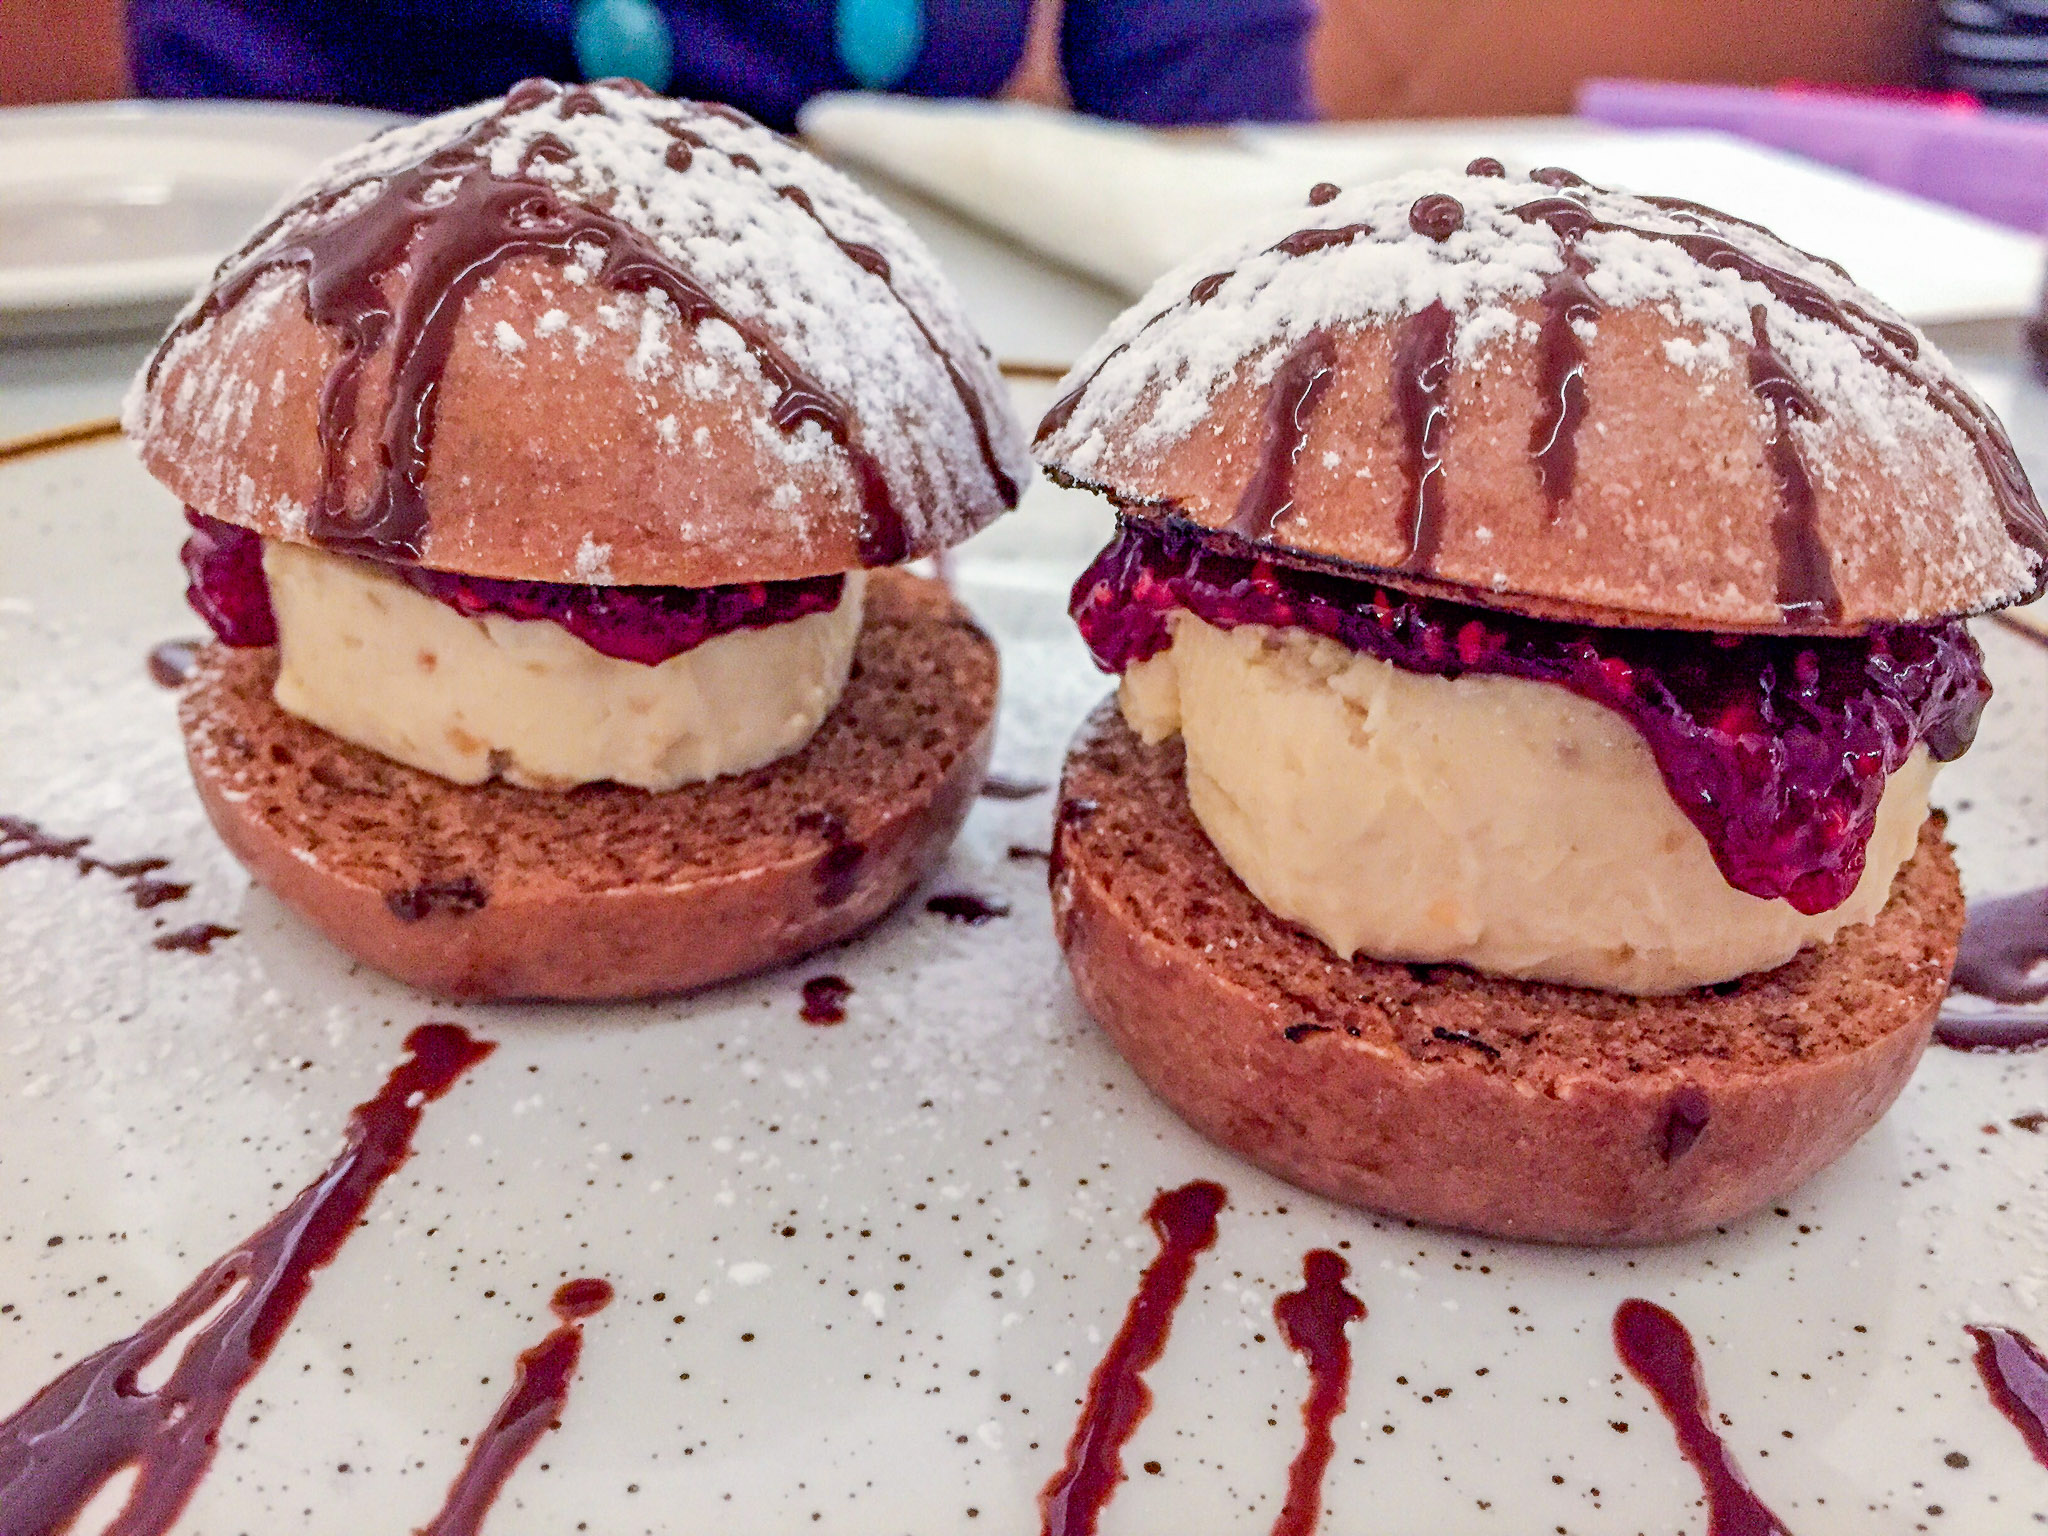 XO Restaurant's hot cross bao! Fresh bao made in house with Sichuan chilli raspberry jam and salted praline peanut paste ice cream drizzled with dark chocolate. They're vegan and dairy free!